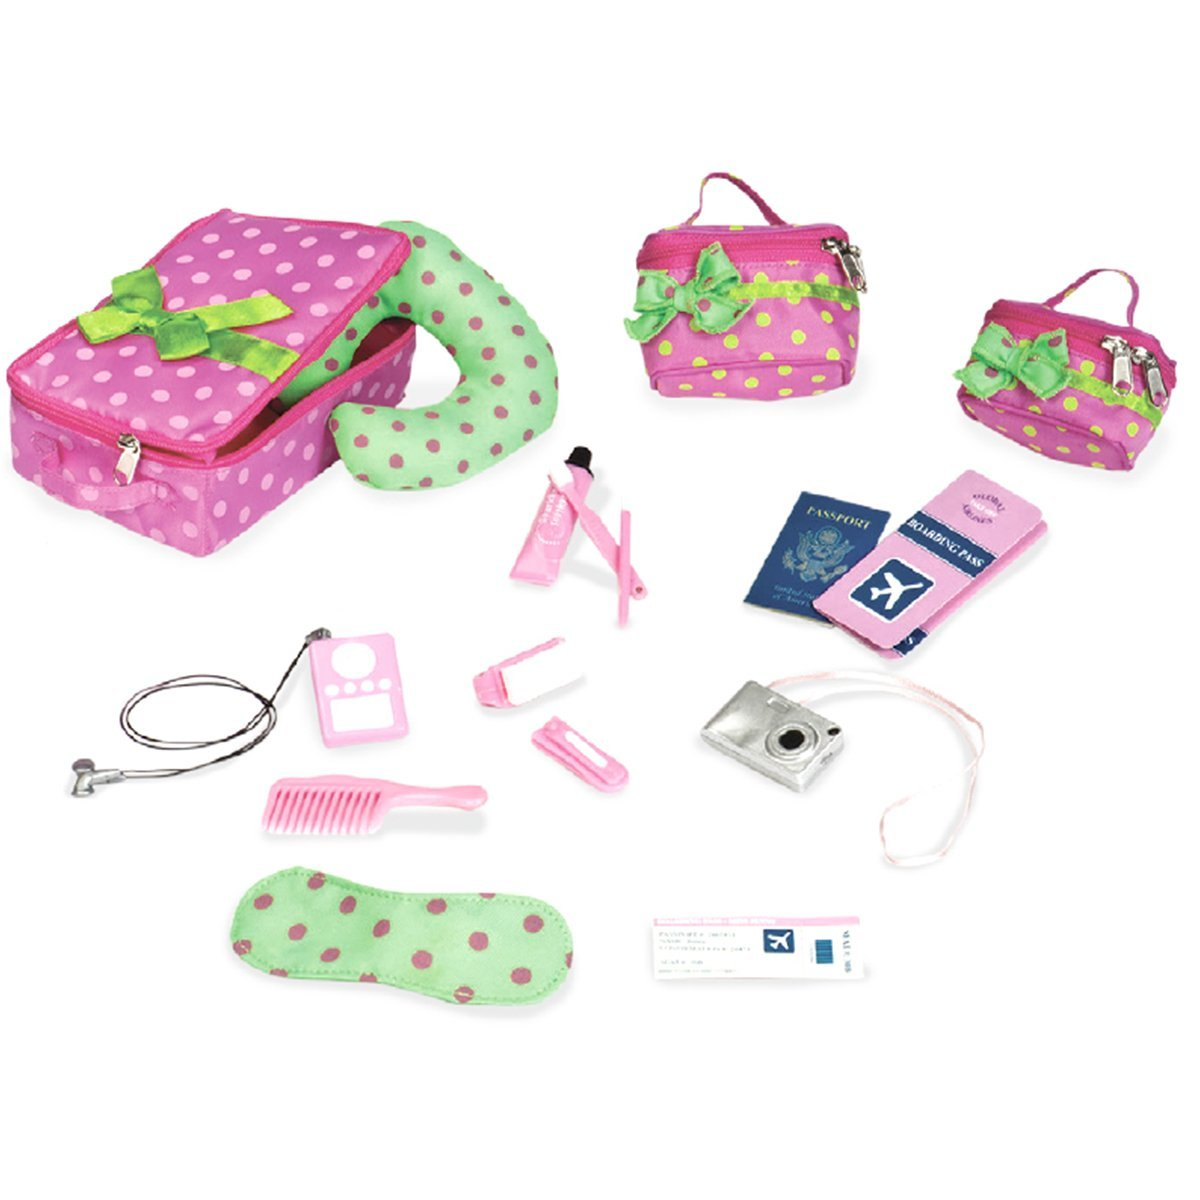 Our Generation Pegged Accessory - Luggage & Travel Set by Our Generation (Image #4)